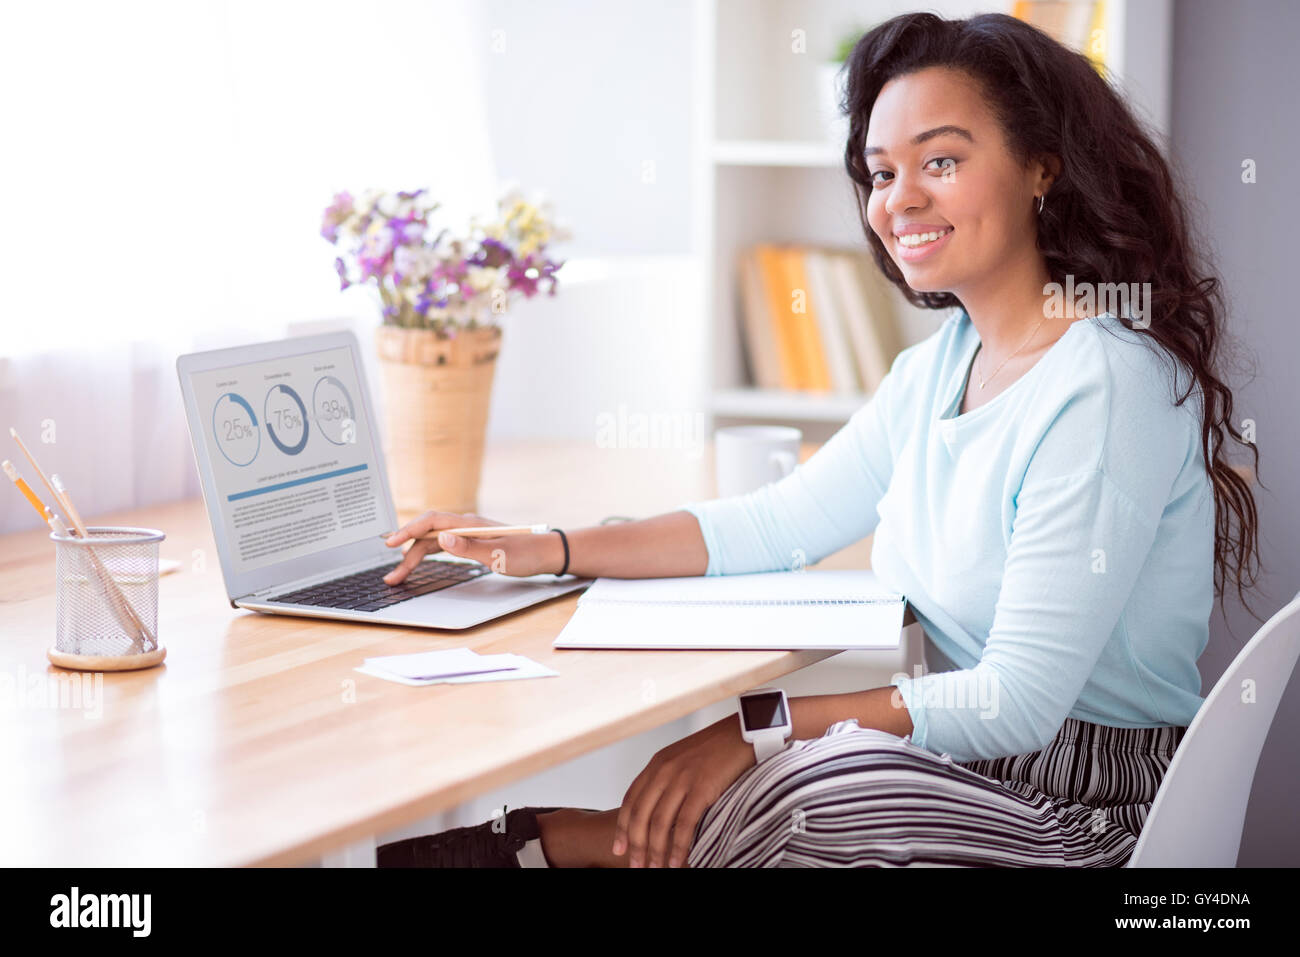 Cheerful smiling woman sitting at the table - Stock Image